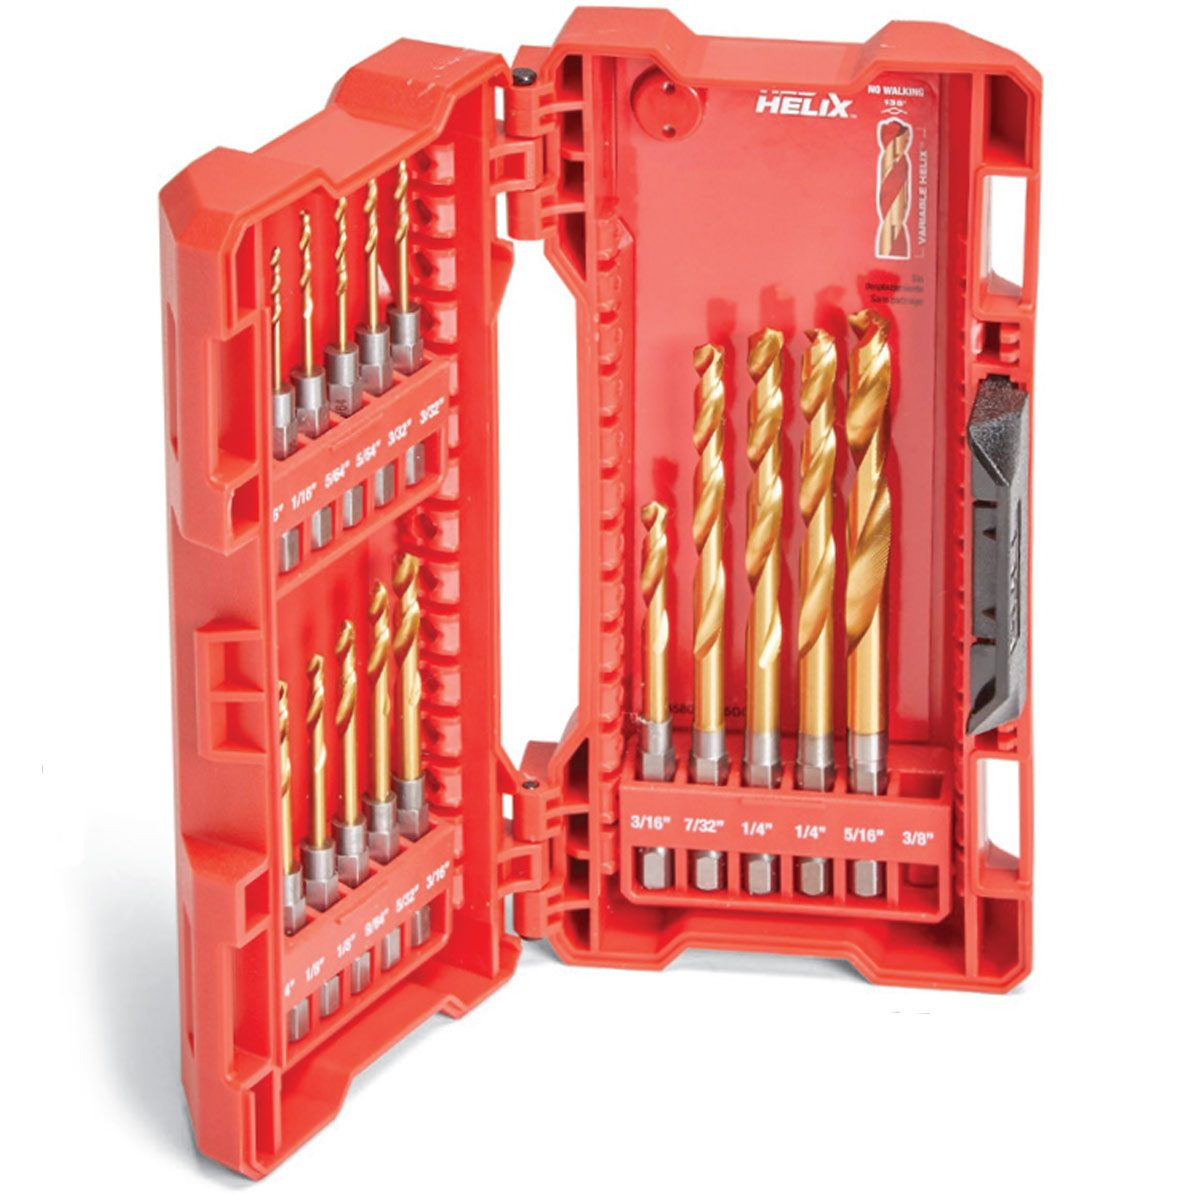 quick switch drill bits